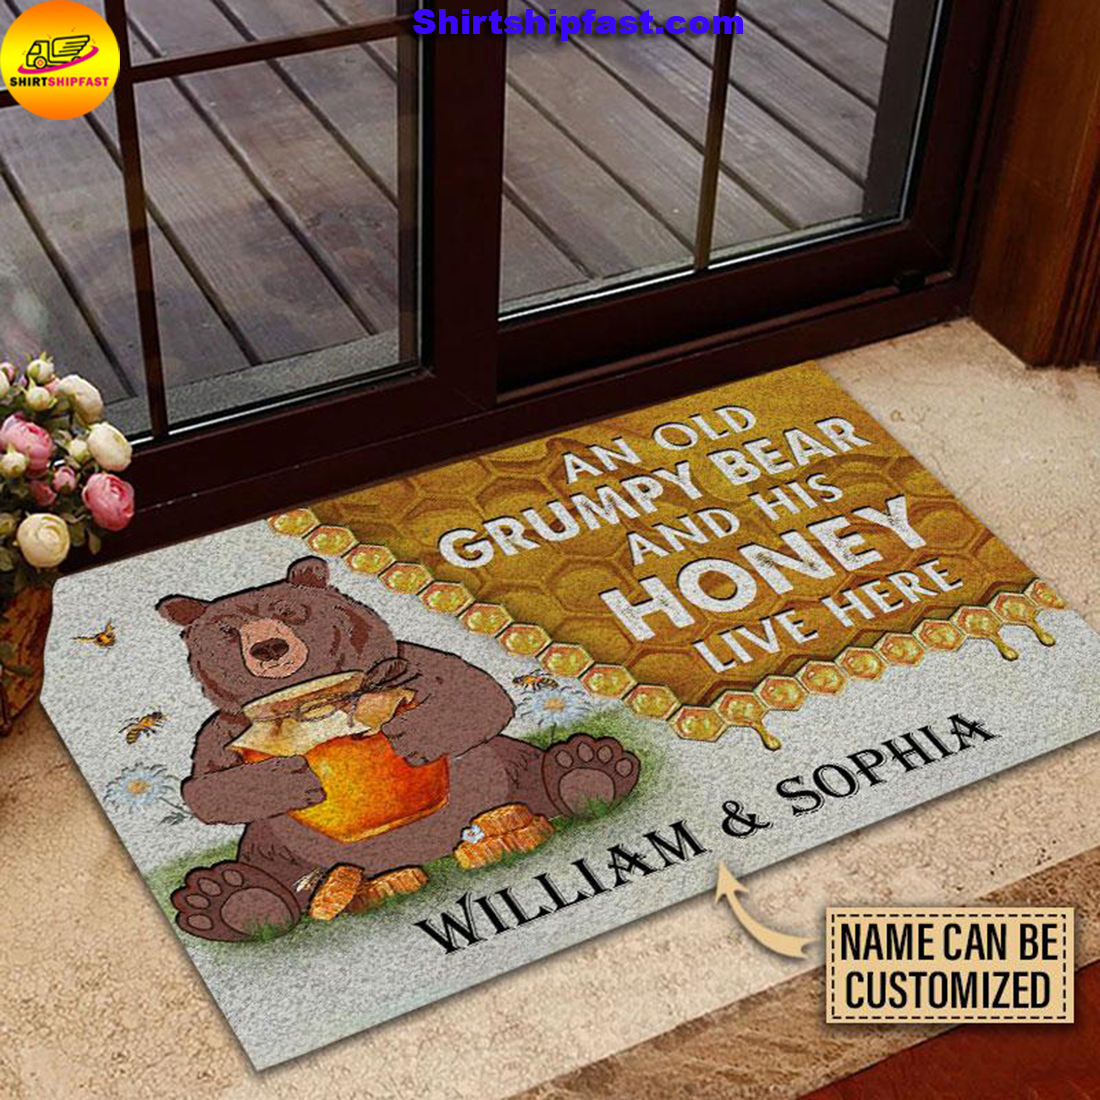 Personalized Bear and his honey bee live here customized doormat